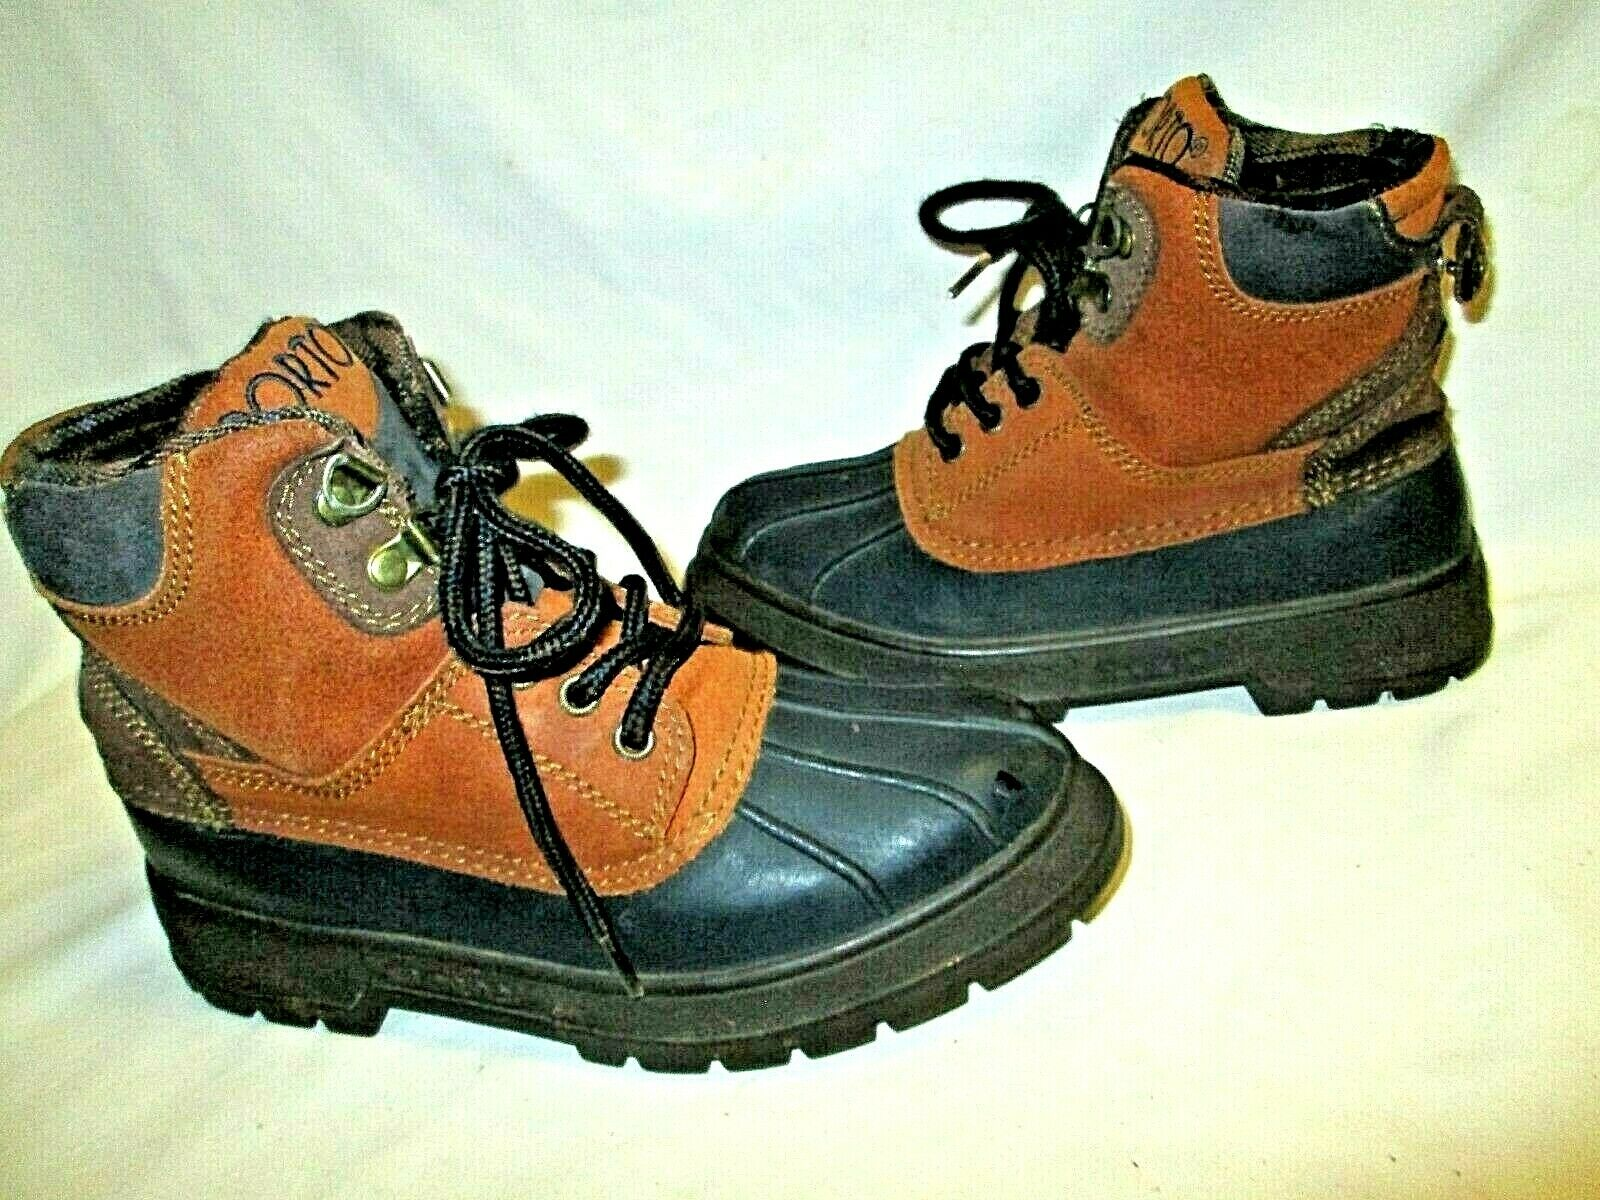 Sporto Lace Up Thermolite Insulated Duck Boots Navy Blue/Tan Leather Sz 5